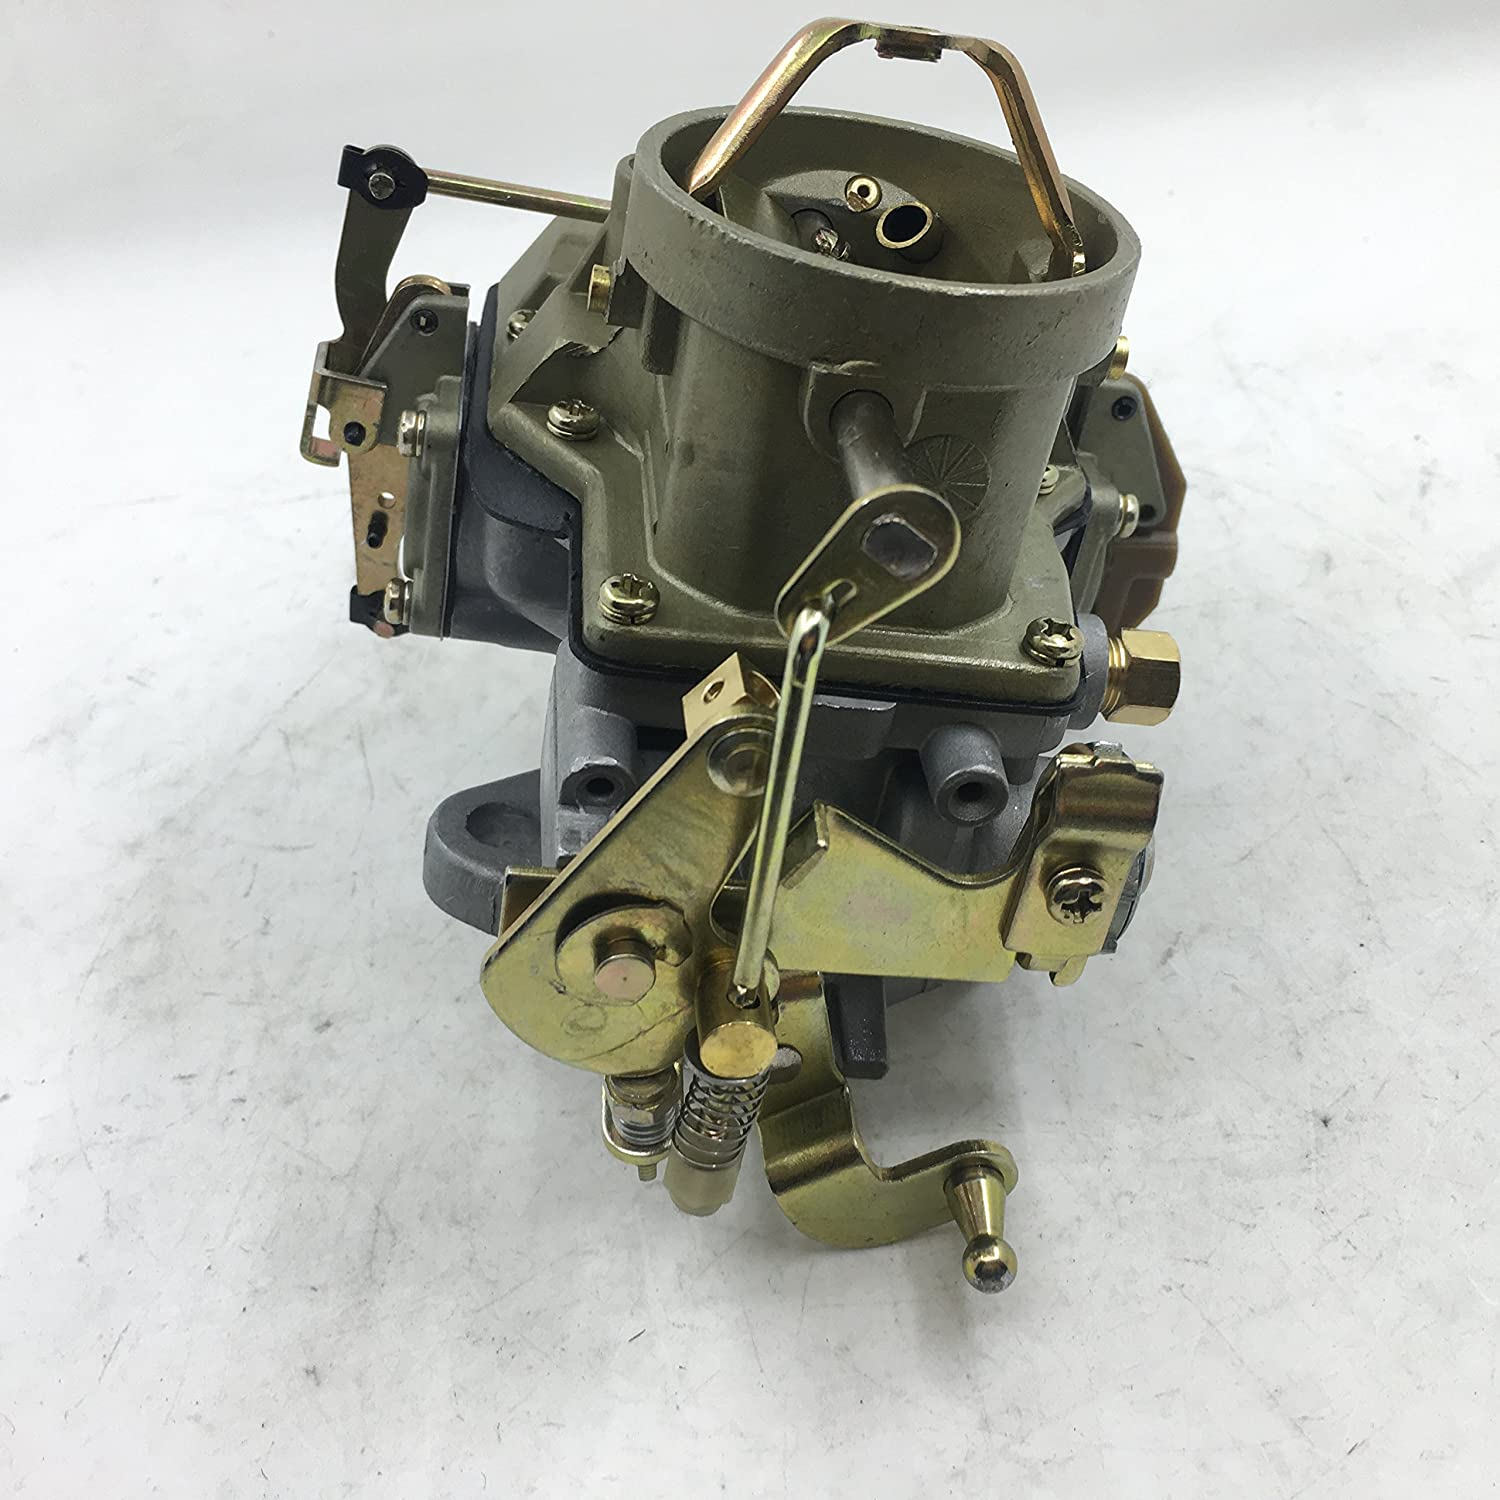 SherryBerg carburettor carb Carburettor replace Autolite 1100 1-Barrel FIT Ford 1963-1967 170 6-Cylinder Carb Hand Manual Choke